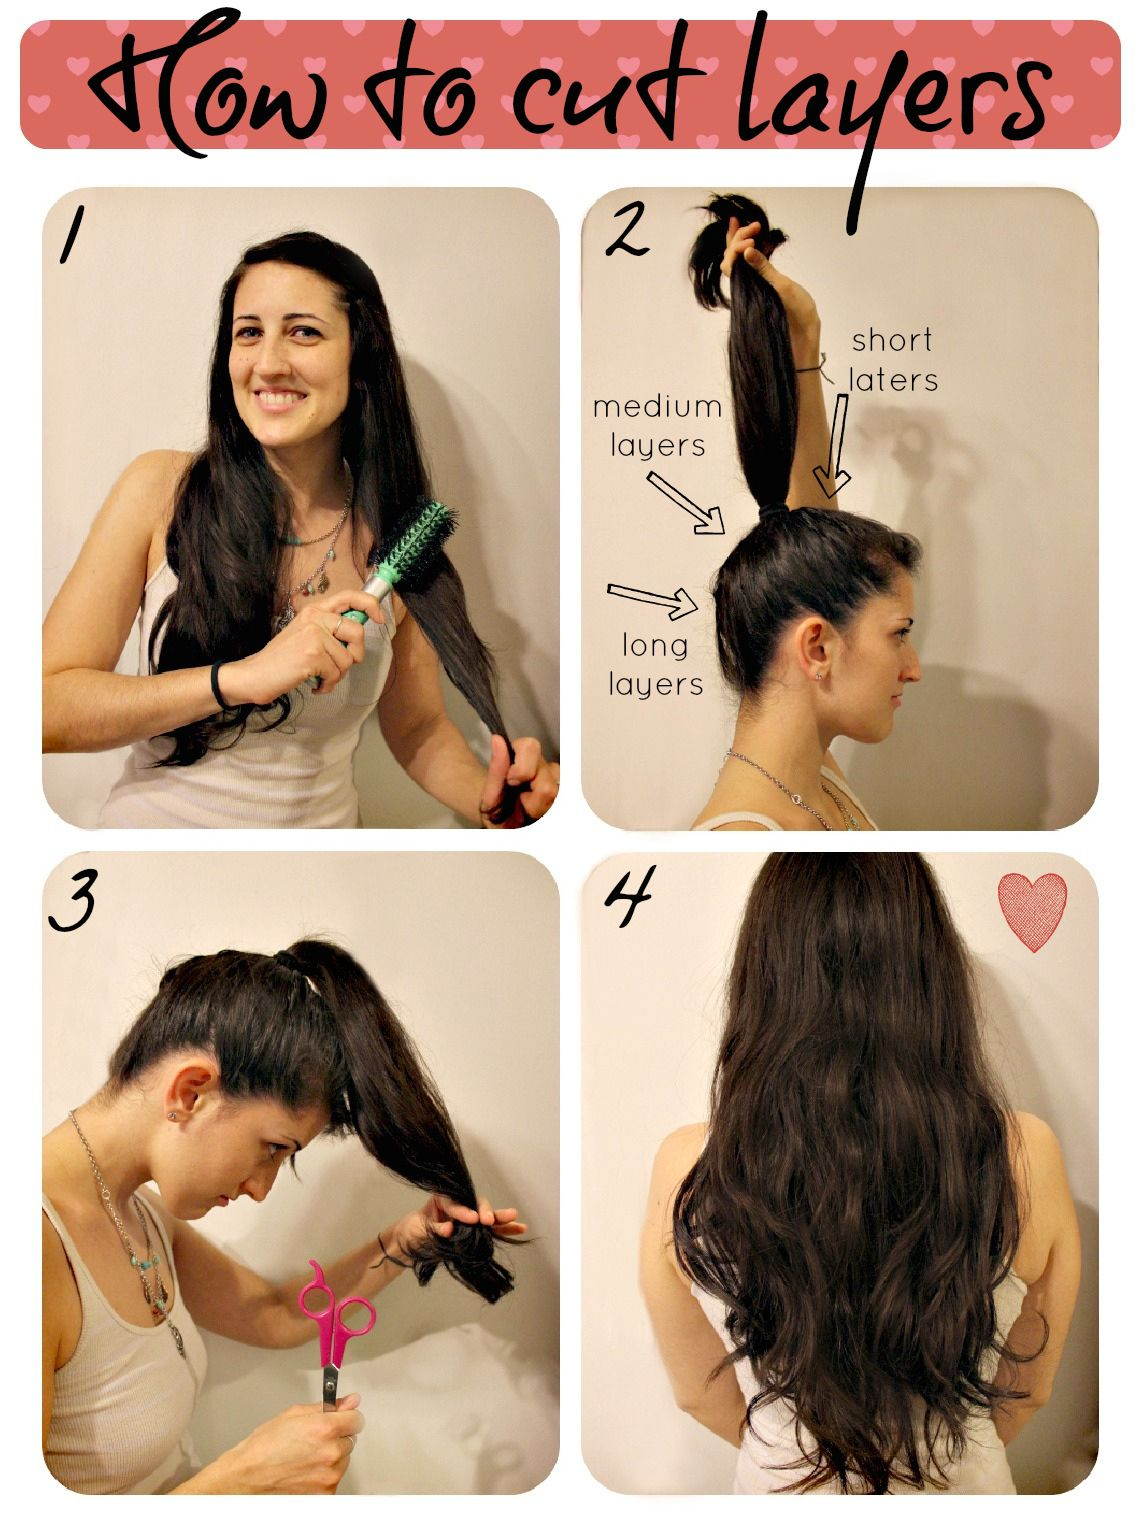 How To Cut Layers H A I R Pinterest Hair Hair Cuts And Hair